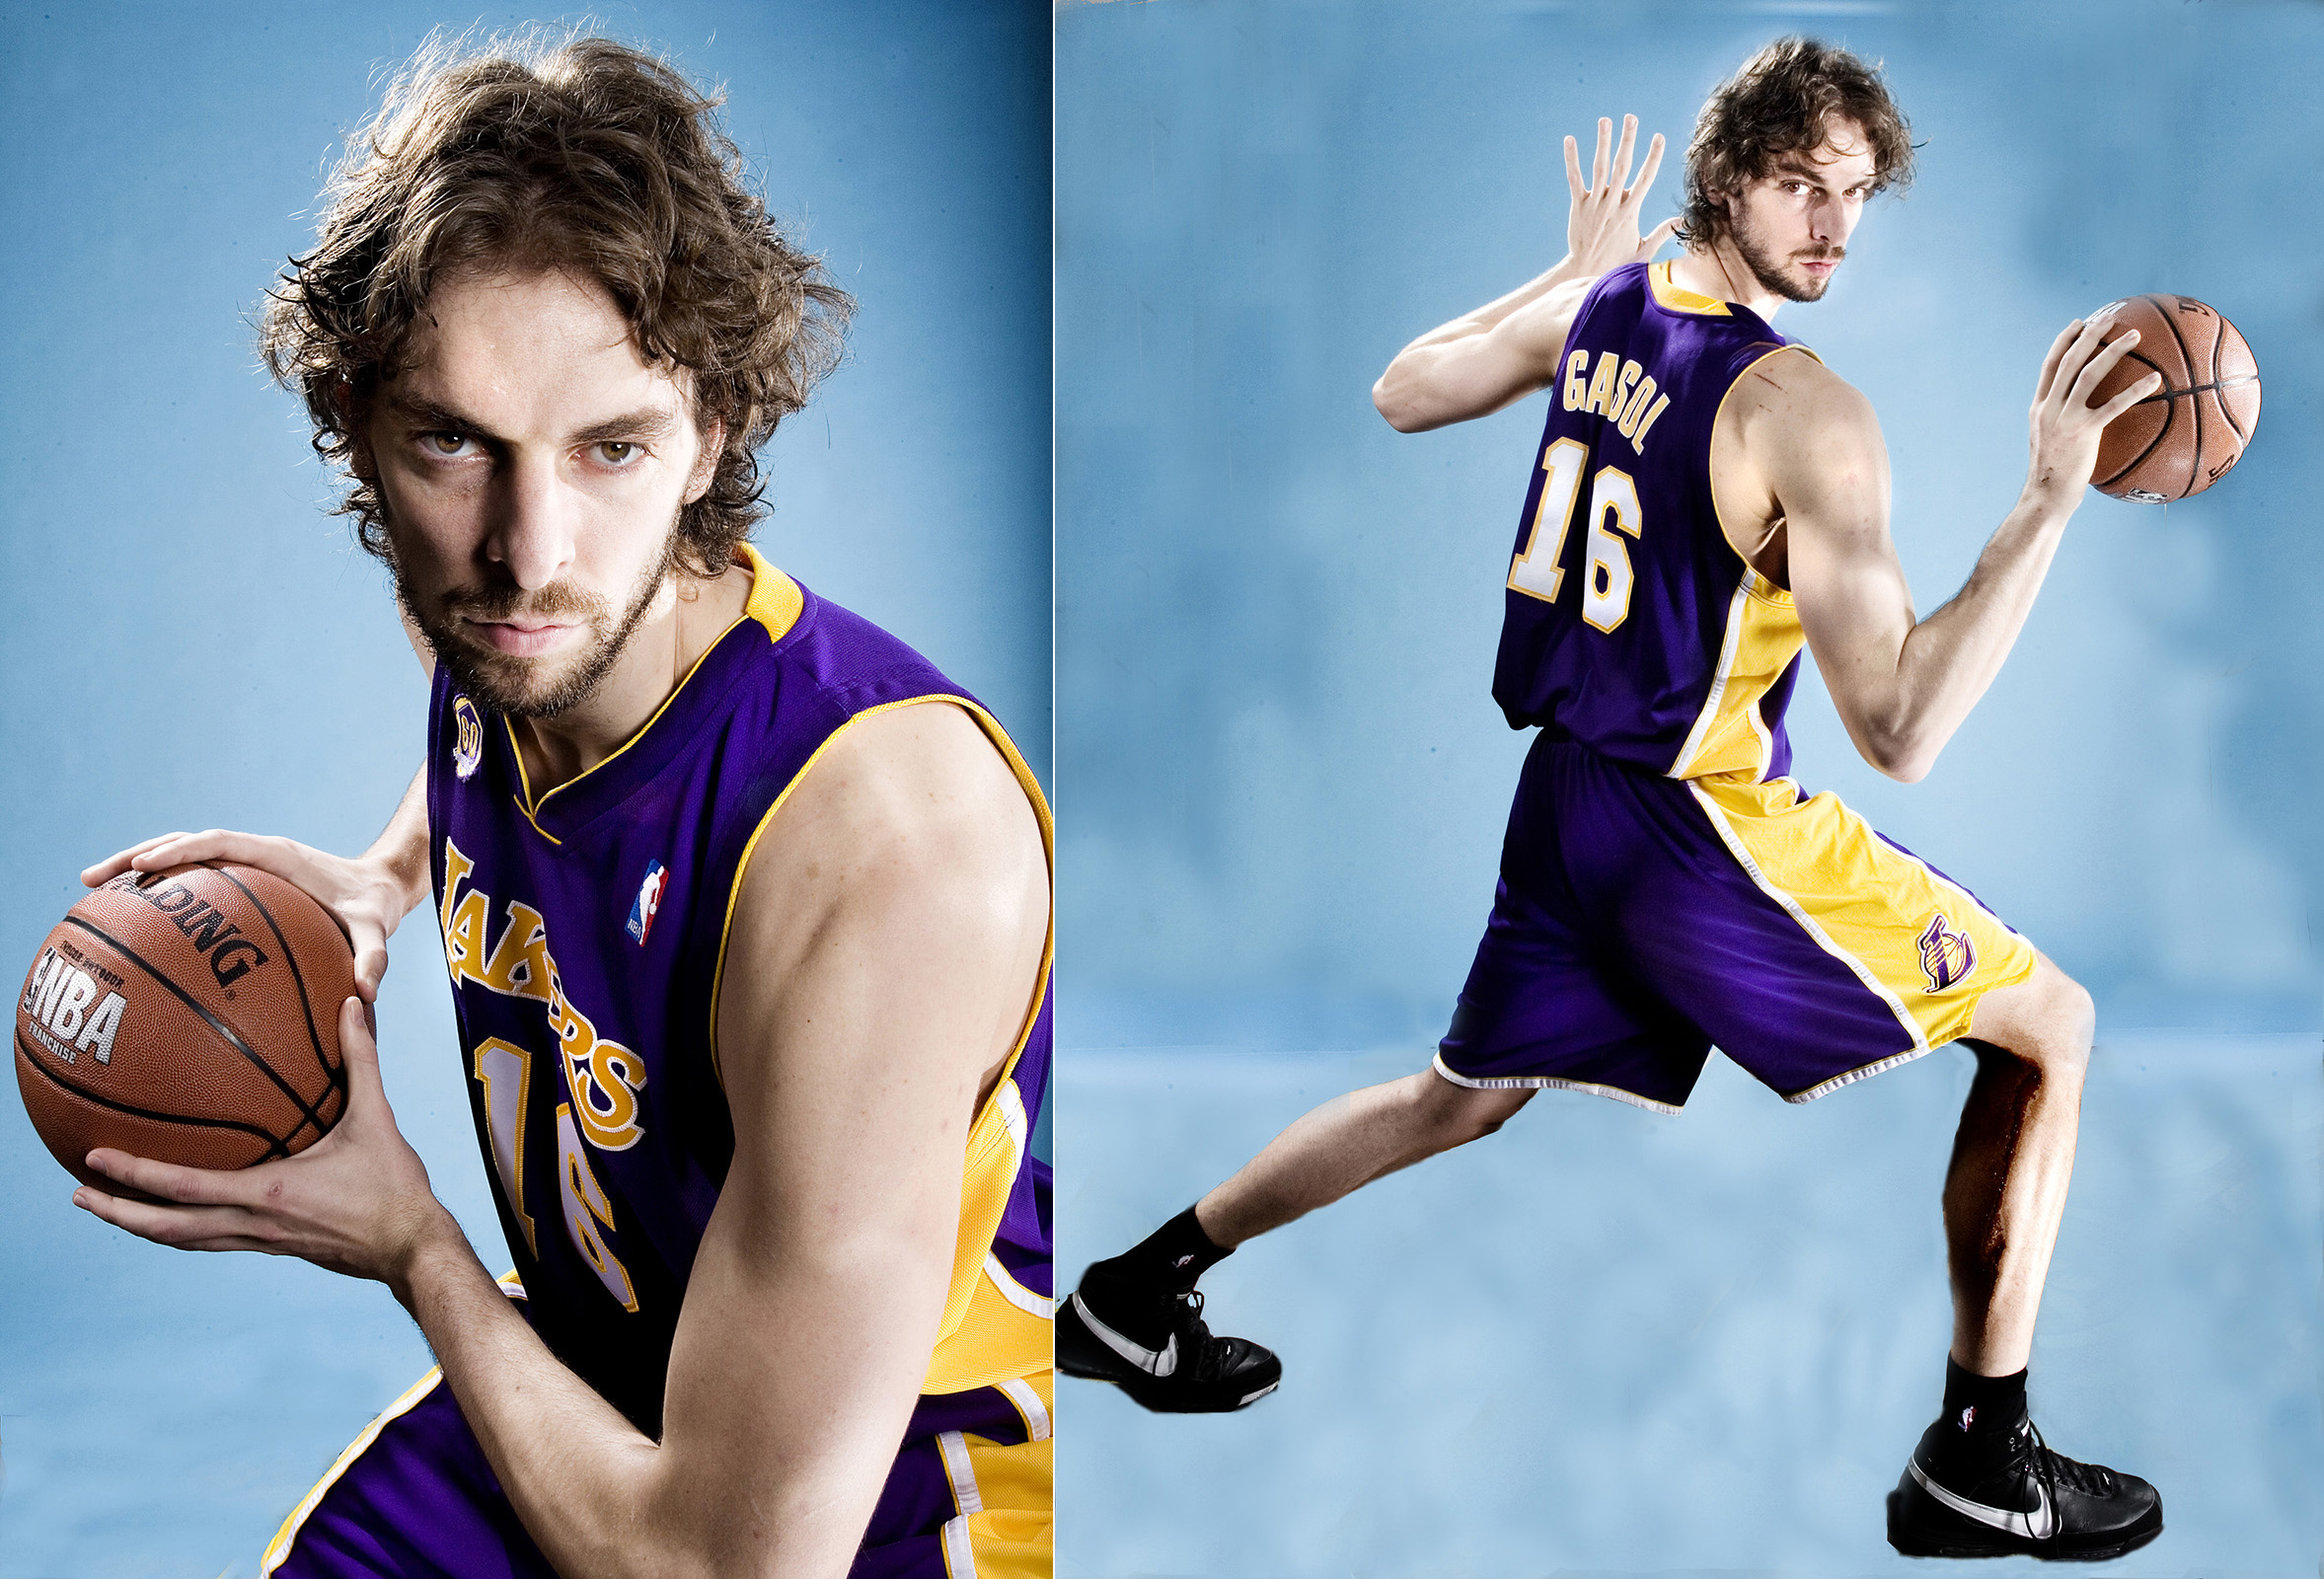 MANUELLO PAGANELLI  Photographer  / PORTRAITS, EDITORIAL, CELEBRITIES / SPORTS , TRAVEL, ADVENTURE / LIFESTYLE, FASHION /MAGAZINE, WORKSHOPS - HOLLYWOOD, SAN FRANCISCO, LOS ANGELES California - PORTRAIT -NBA Spain Pau Gasol